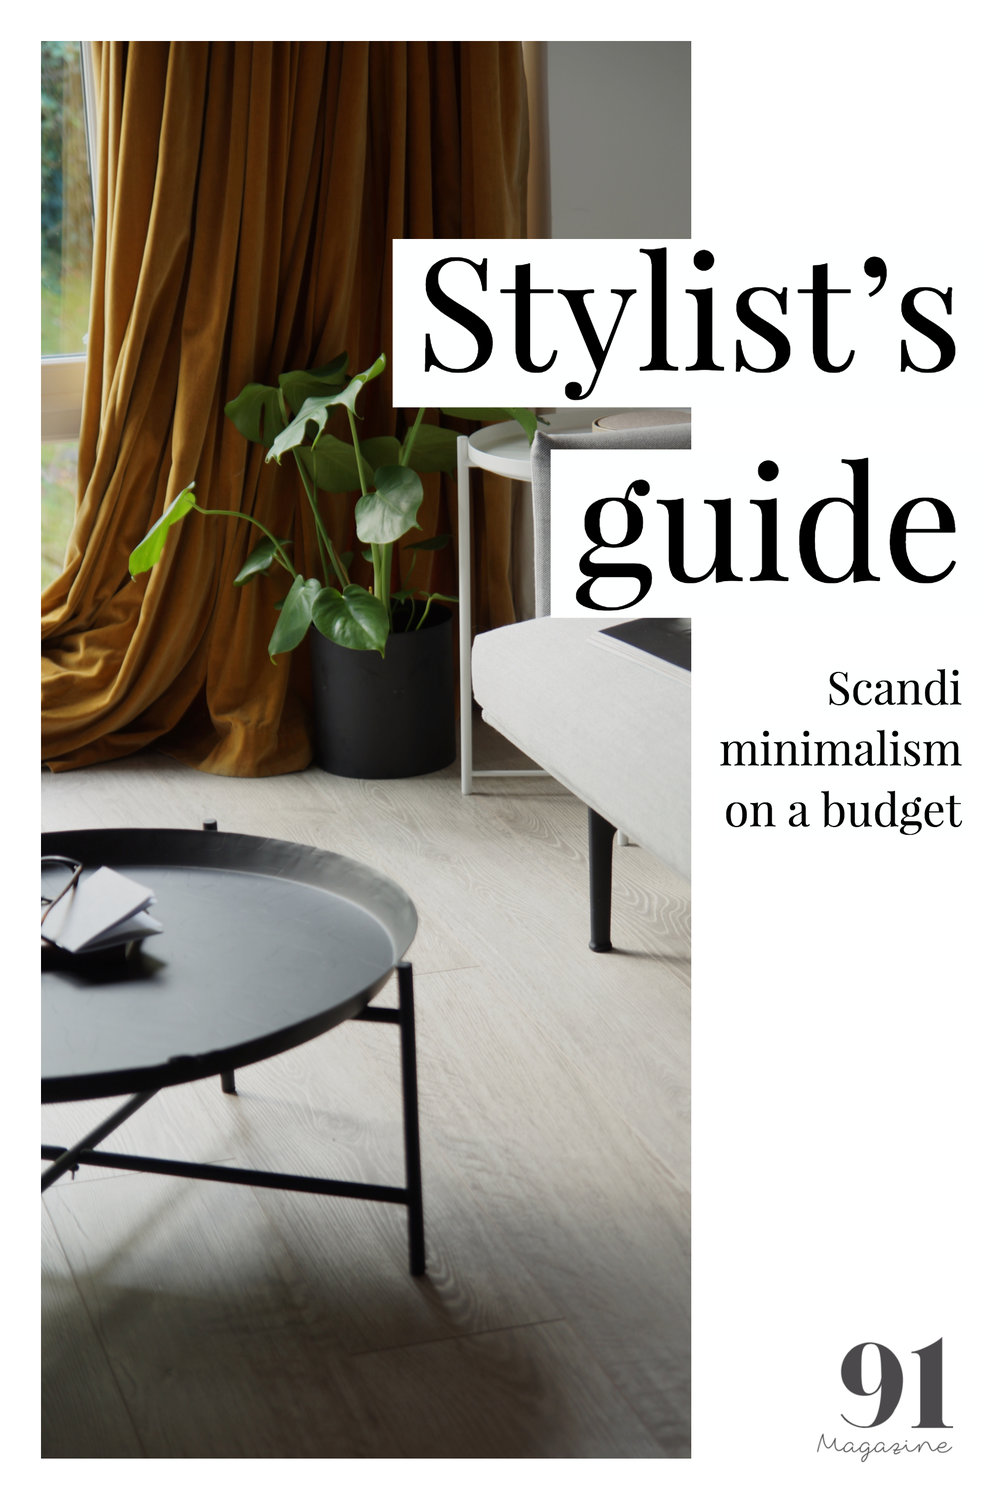 Stylists guide to Scandi Minimalism on a budget